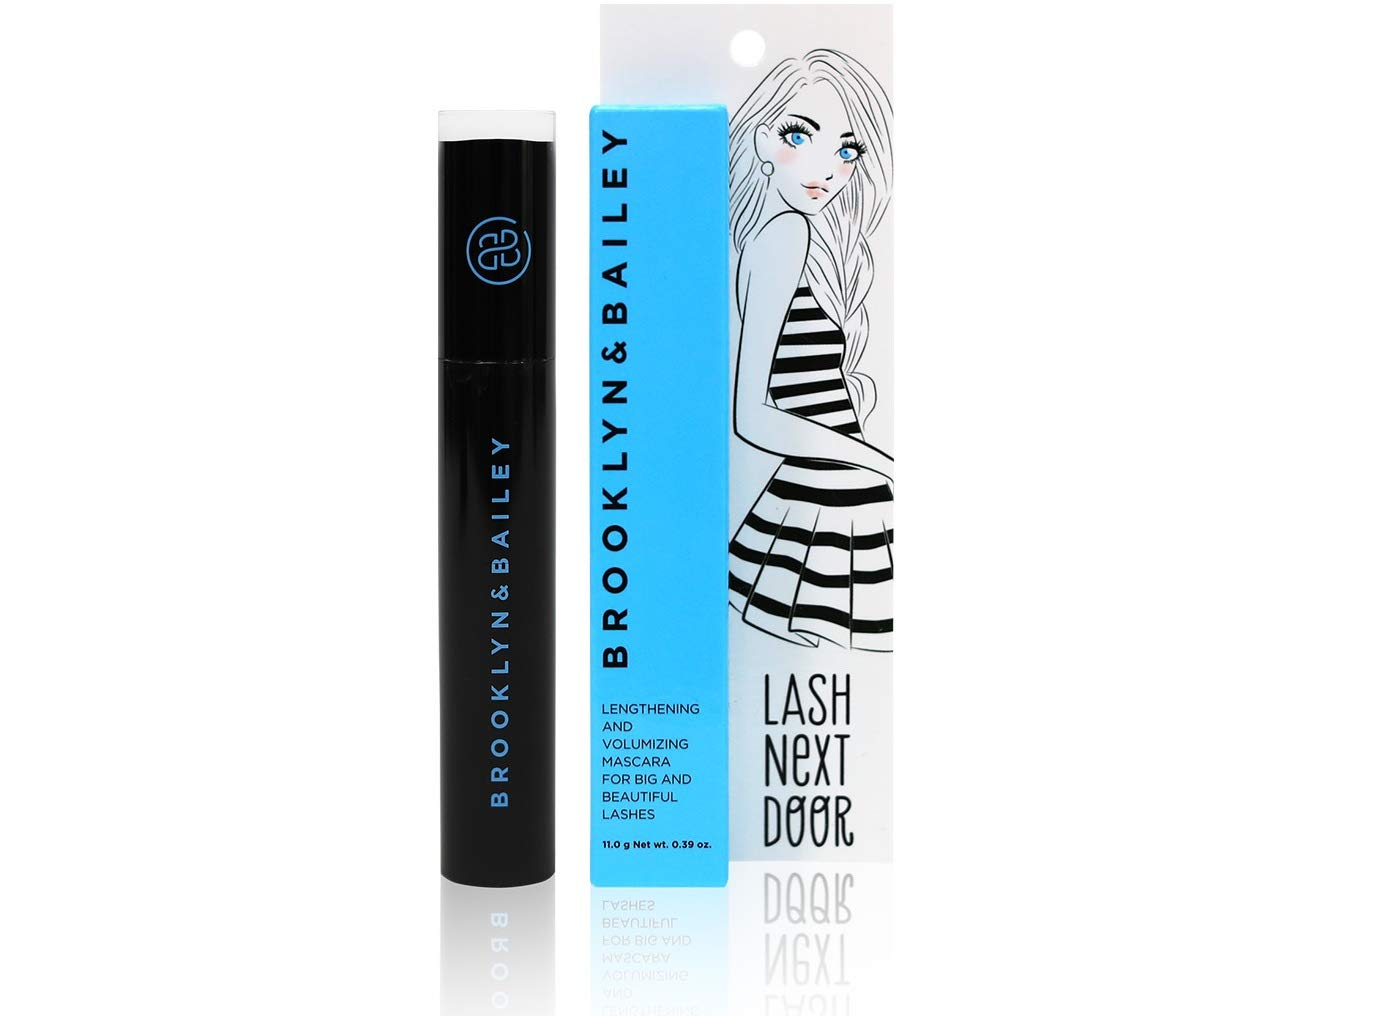 Lash Next Door Black Waterproof Mascara Lengthens and Volumizes Without Clumps Volume Waterproof Mascara for Longer Fuller Thicker Smudge Proof Lashes by Brooklyn and Bailey